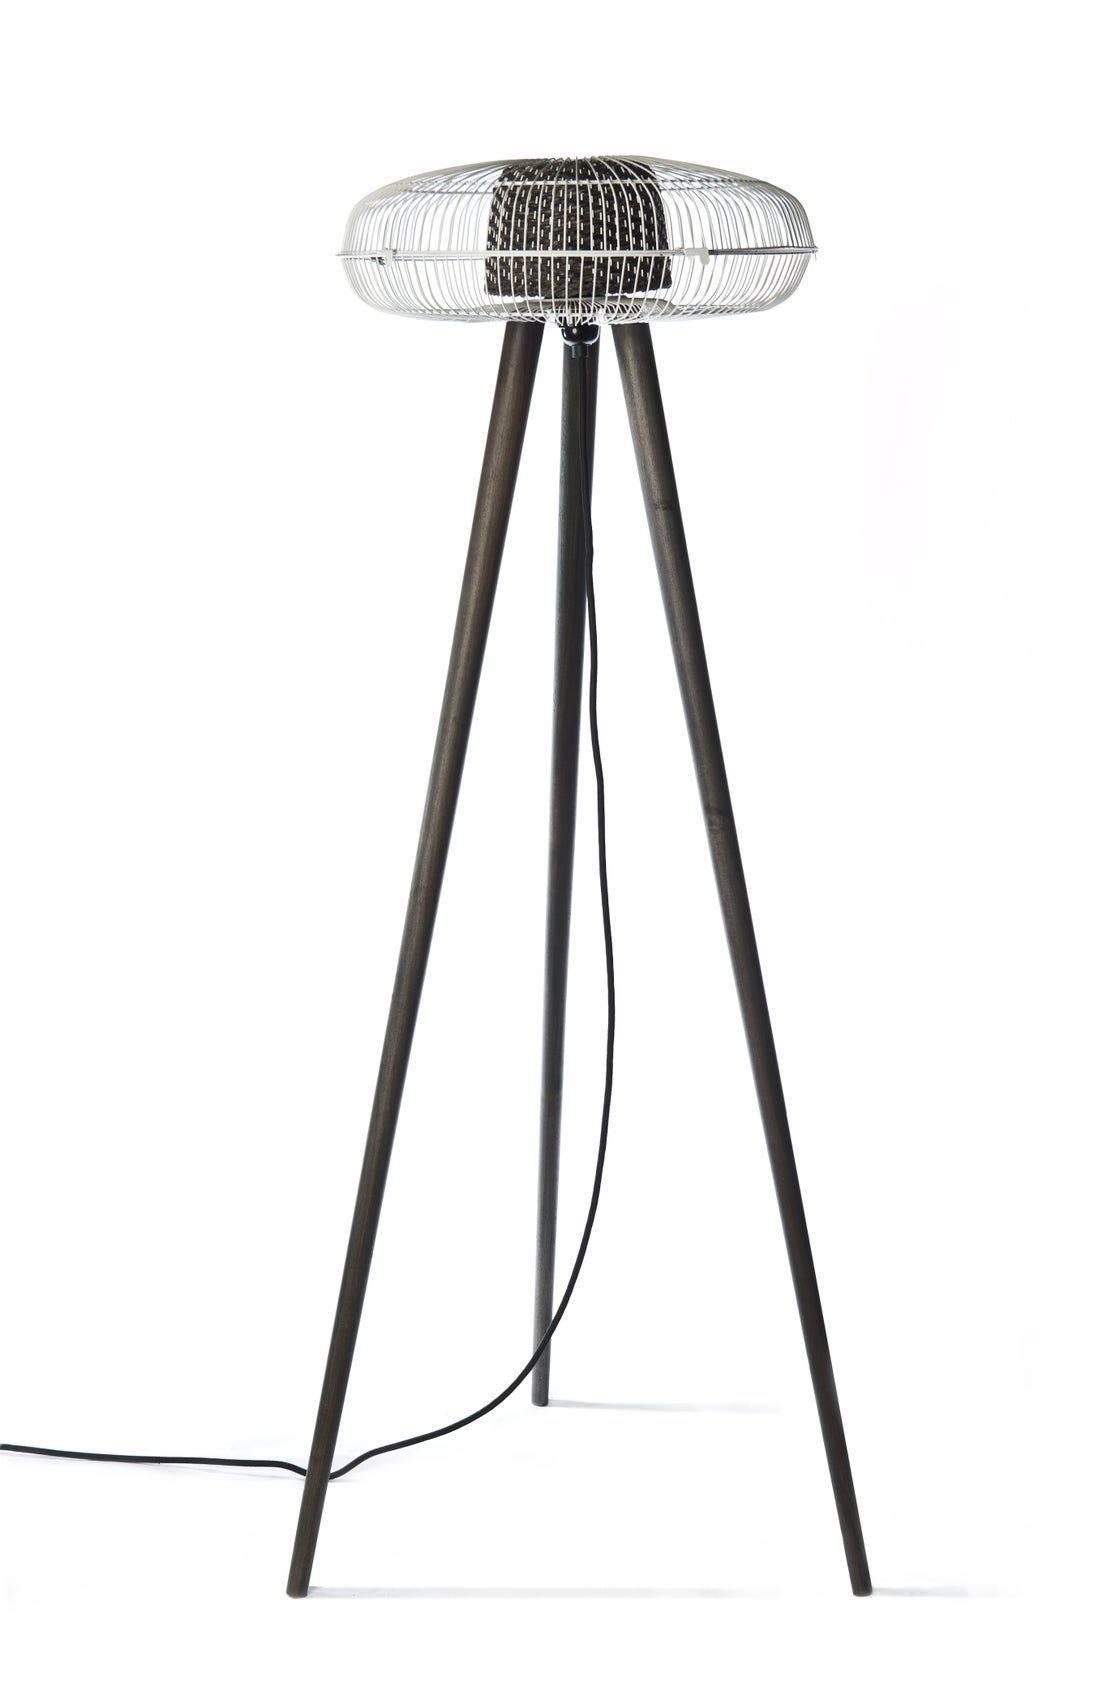 Image of FAN floor lamp~ White